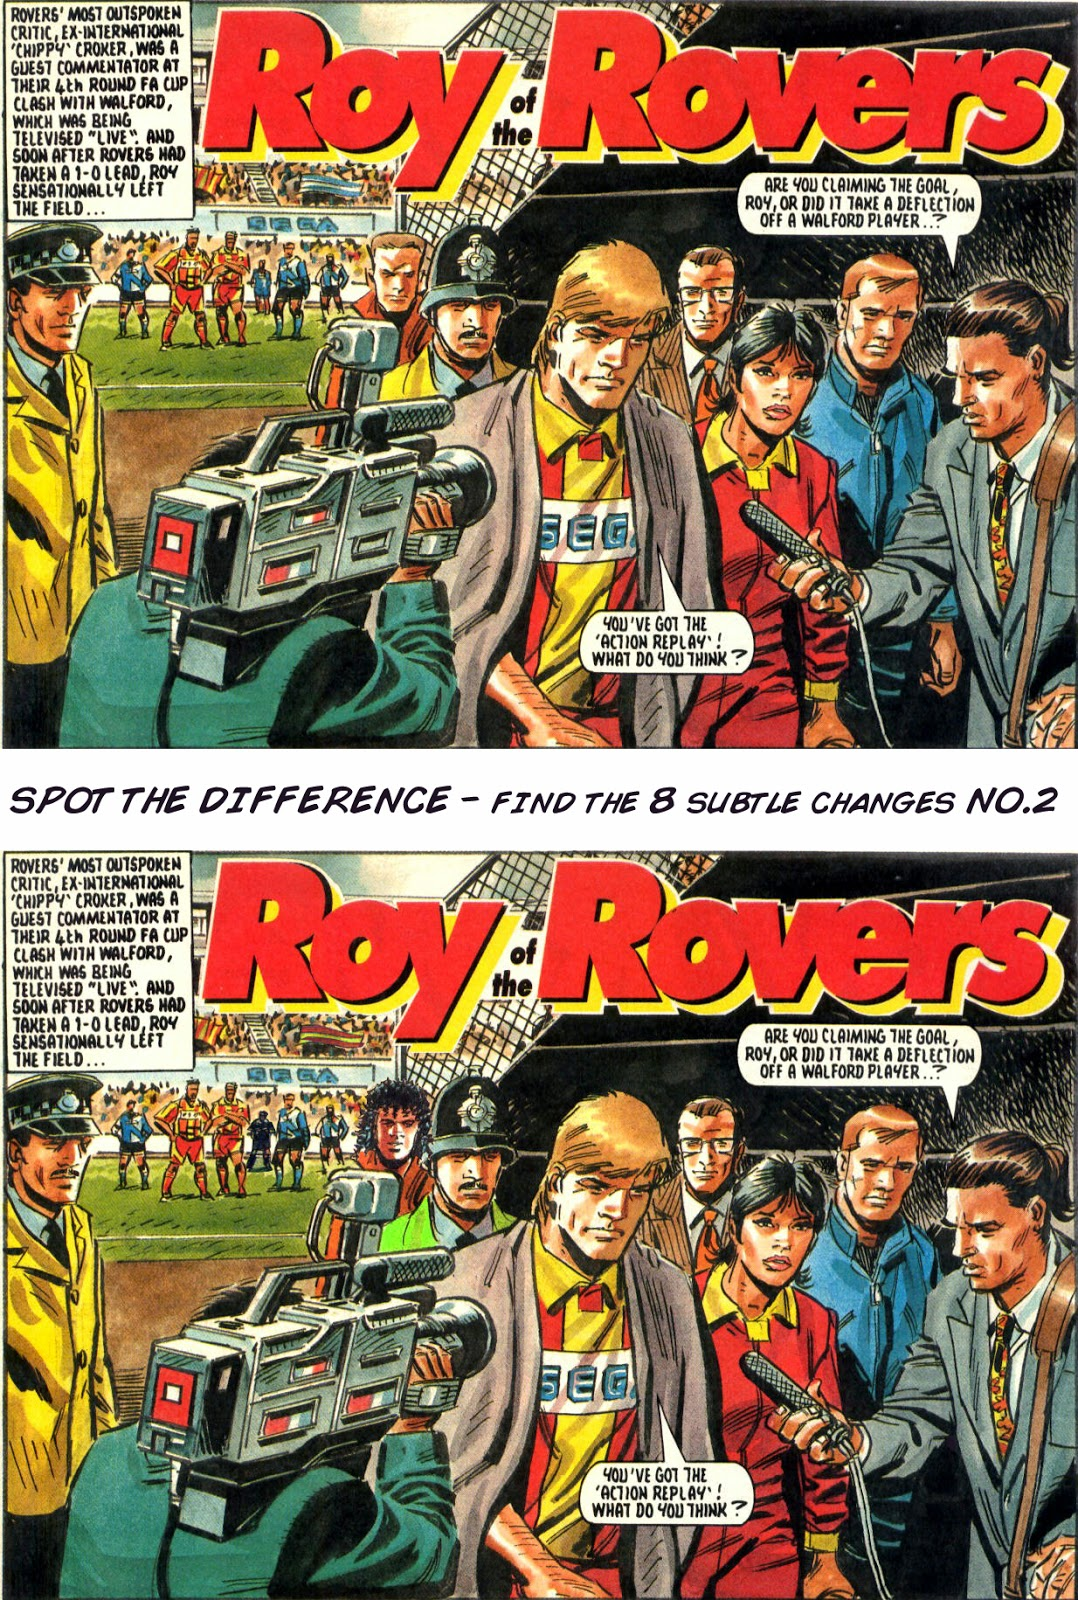 Roy of the Rovers Spot the Difference No.2